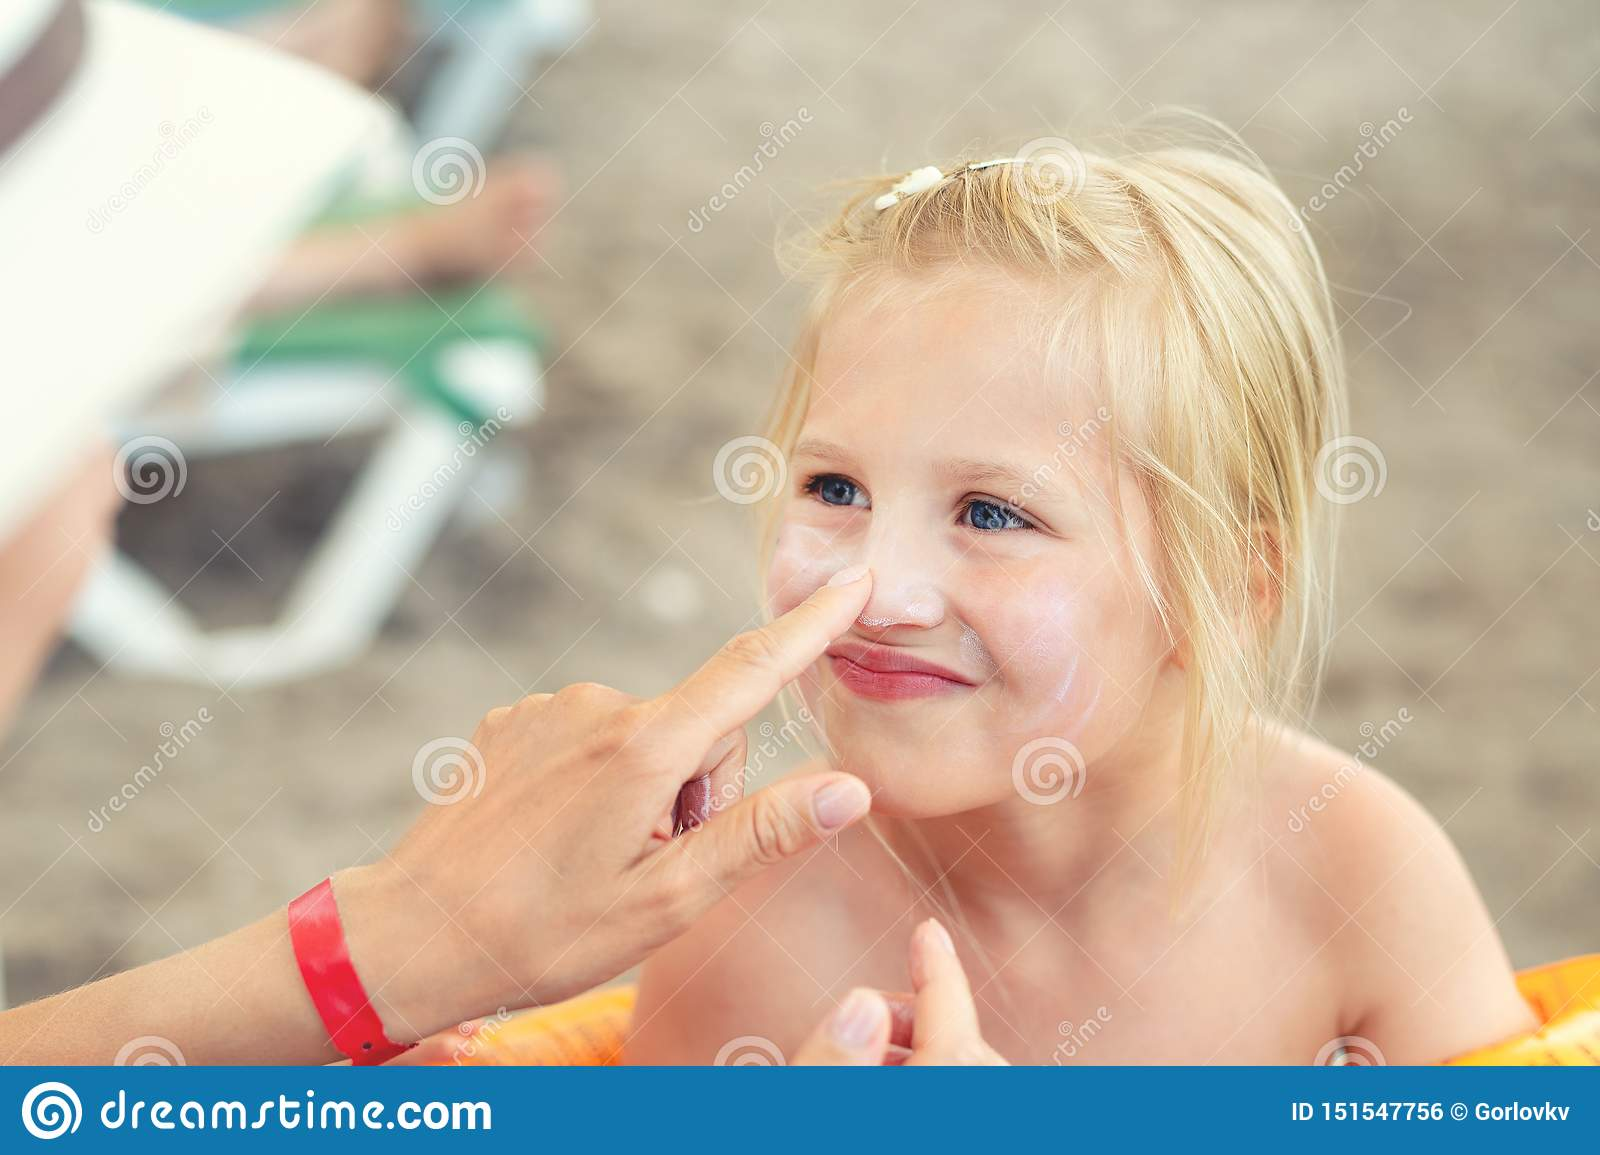 Mother applying sunscreen protection creme on cute little daughter face. Mom using sunblocking lotion to protect kid girl from sun